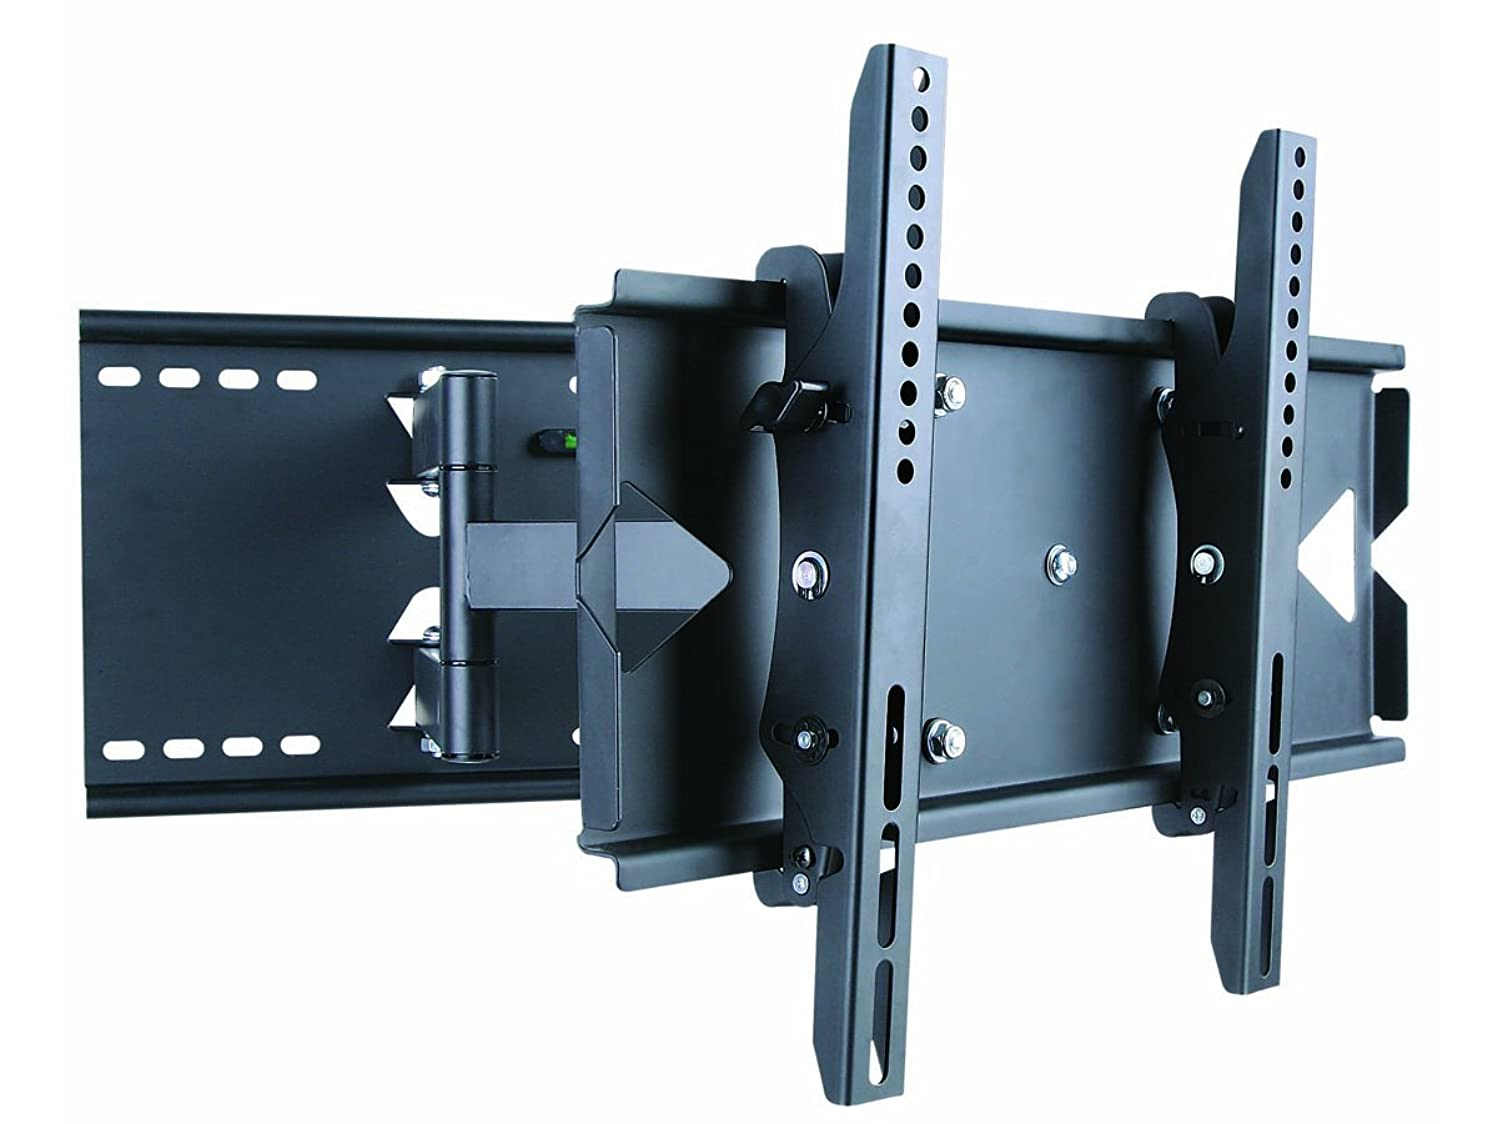 Monoprice Titan Series Full-Motion Articulating TV Wall Mount Bracket - for TVs 23in to 37in Max Weight 130lbs Extension Range of 5.0in to 19.5in VESA Up to 496x330 Works with Concrete & Brick